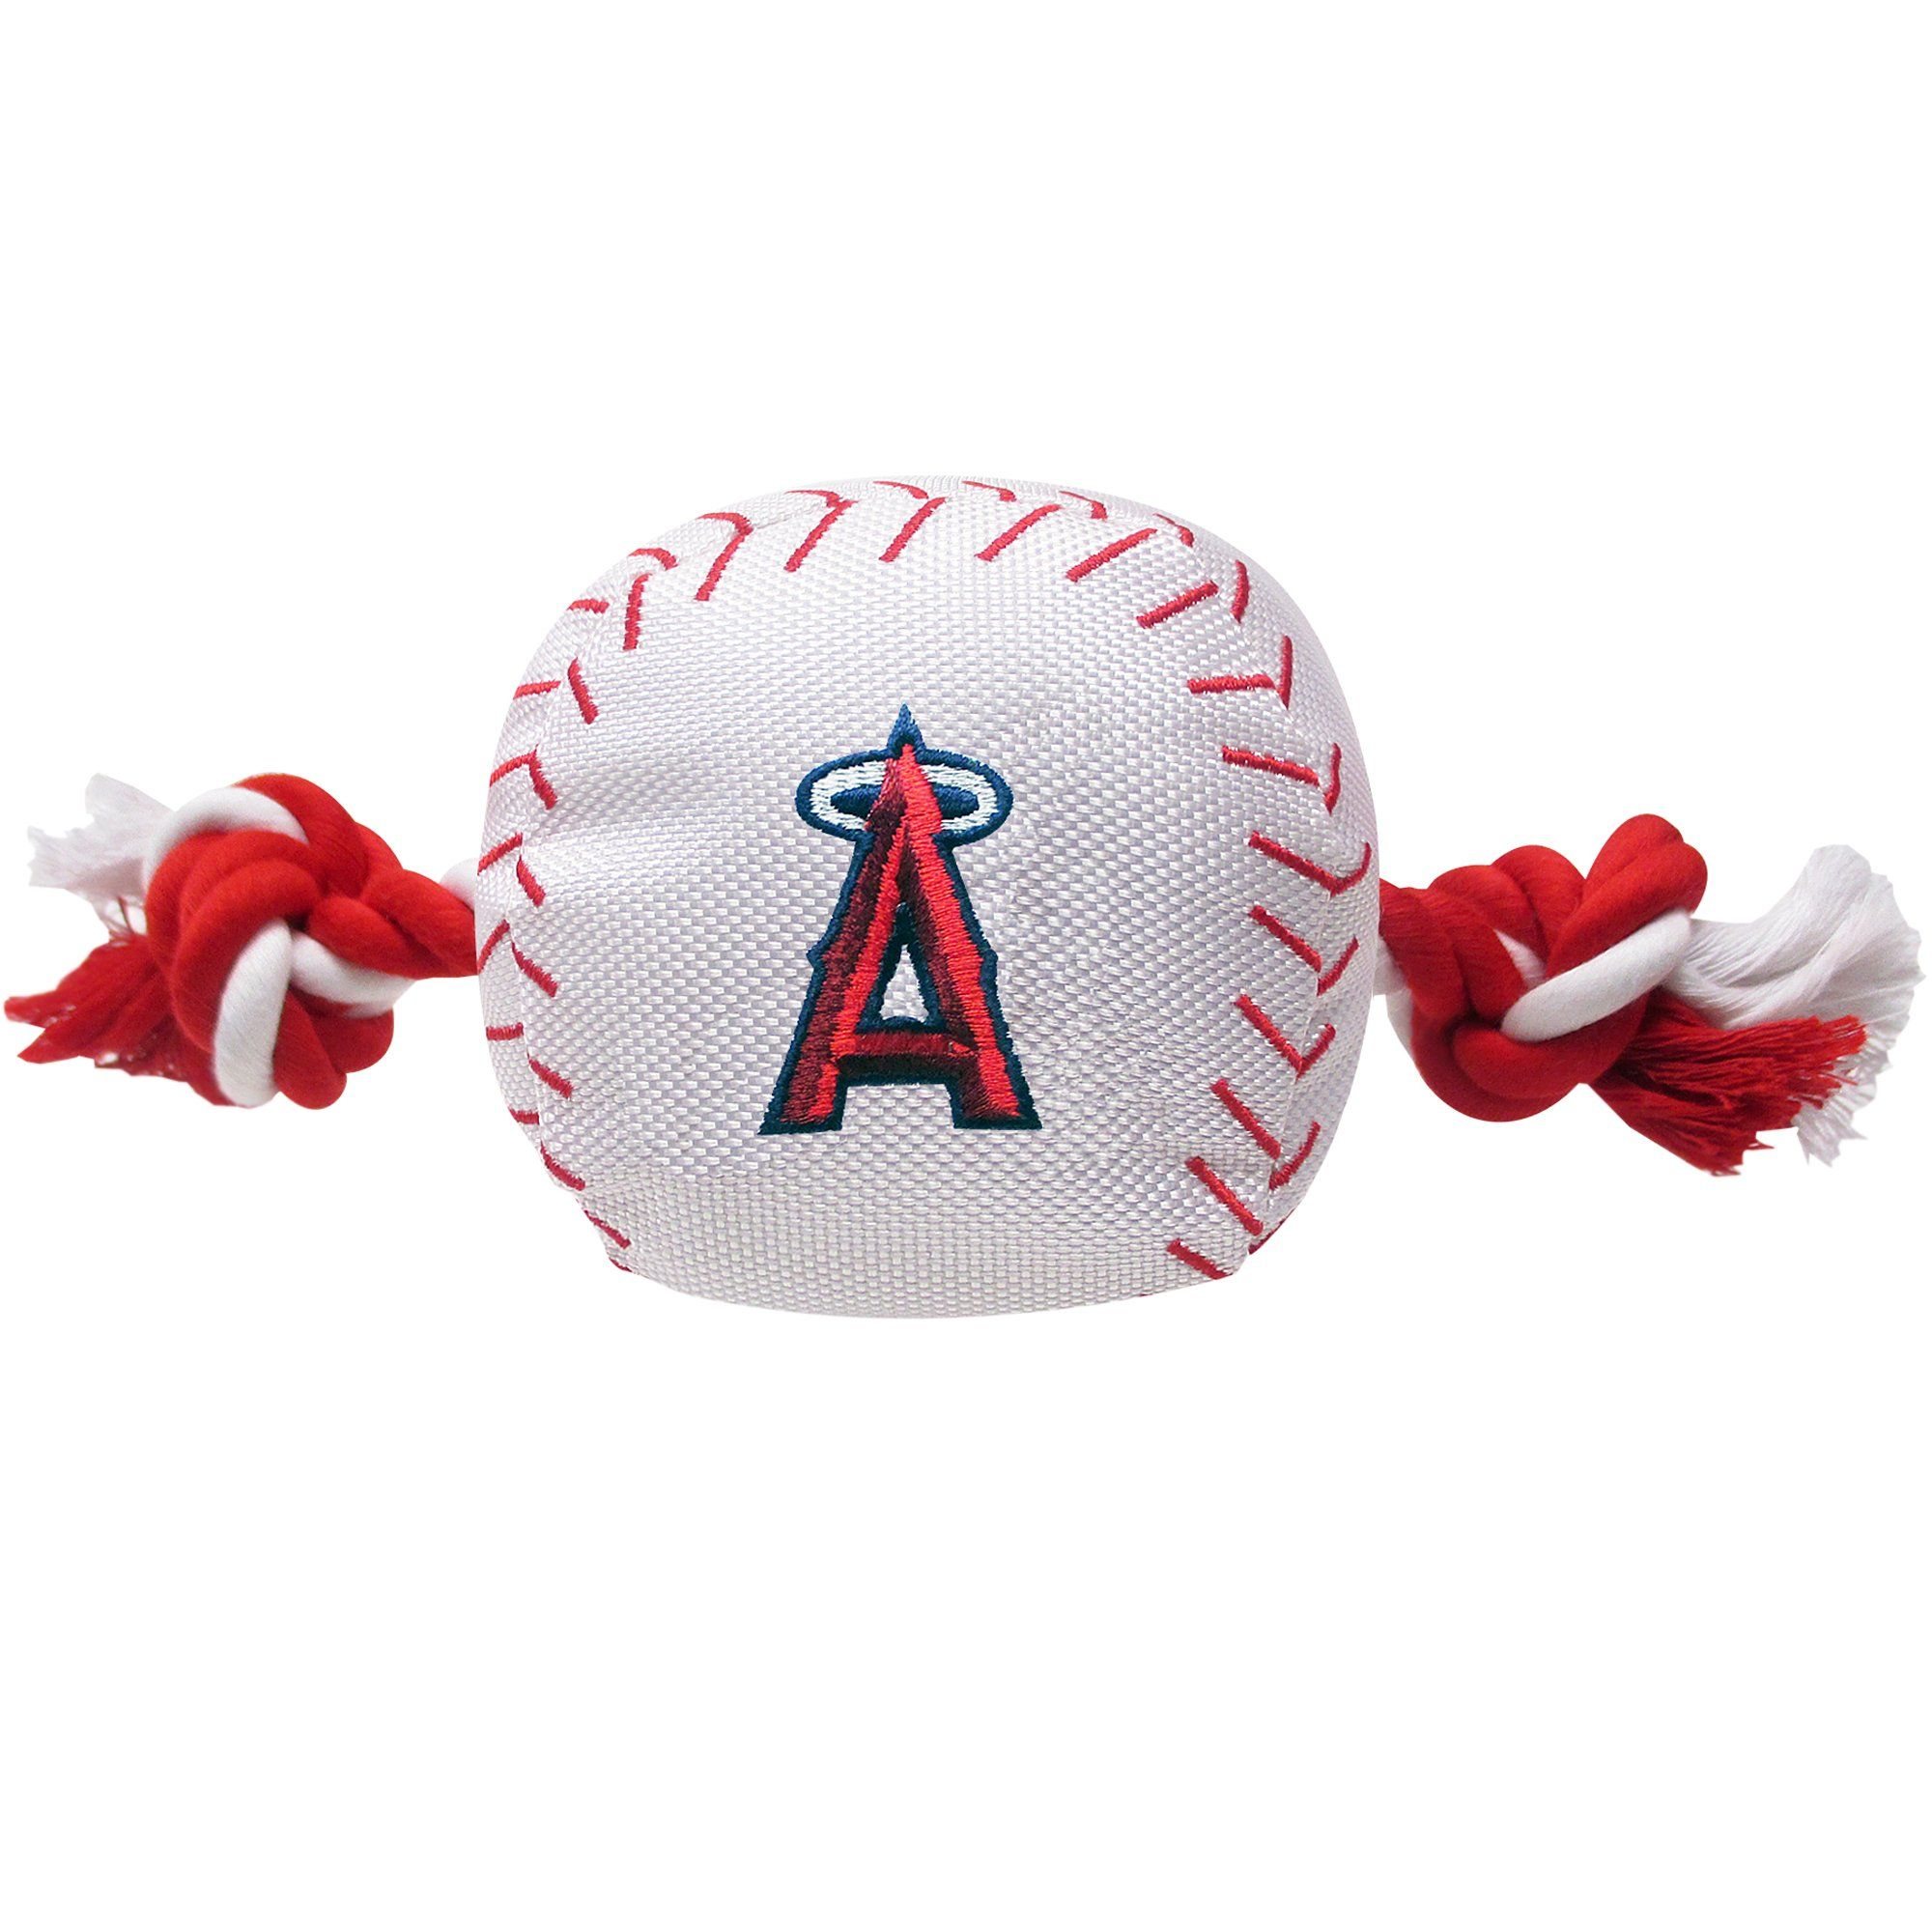 Pets First MLB Los Angeles Angels Baseball Toy, Large in